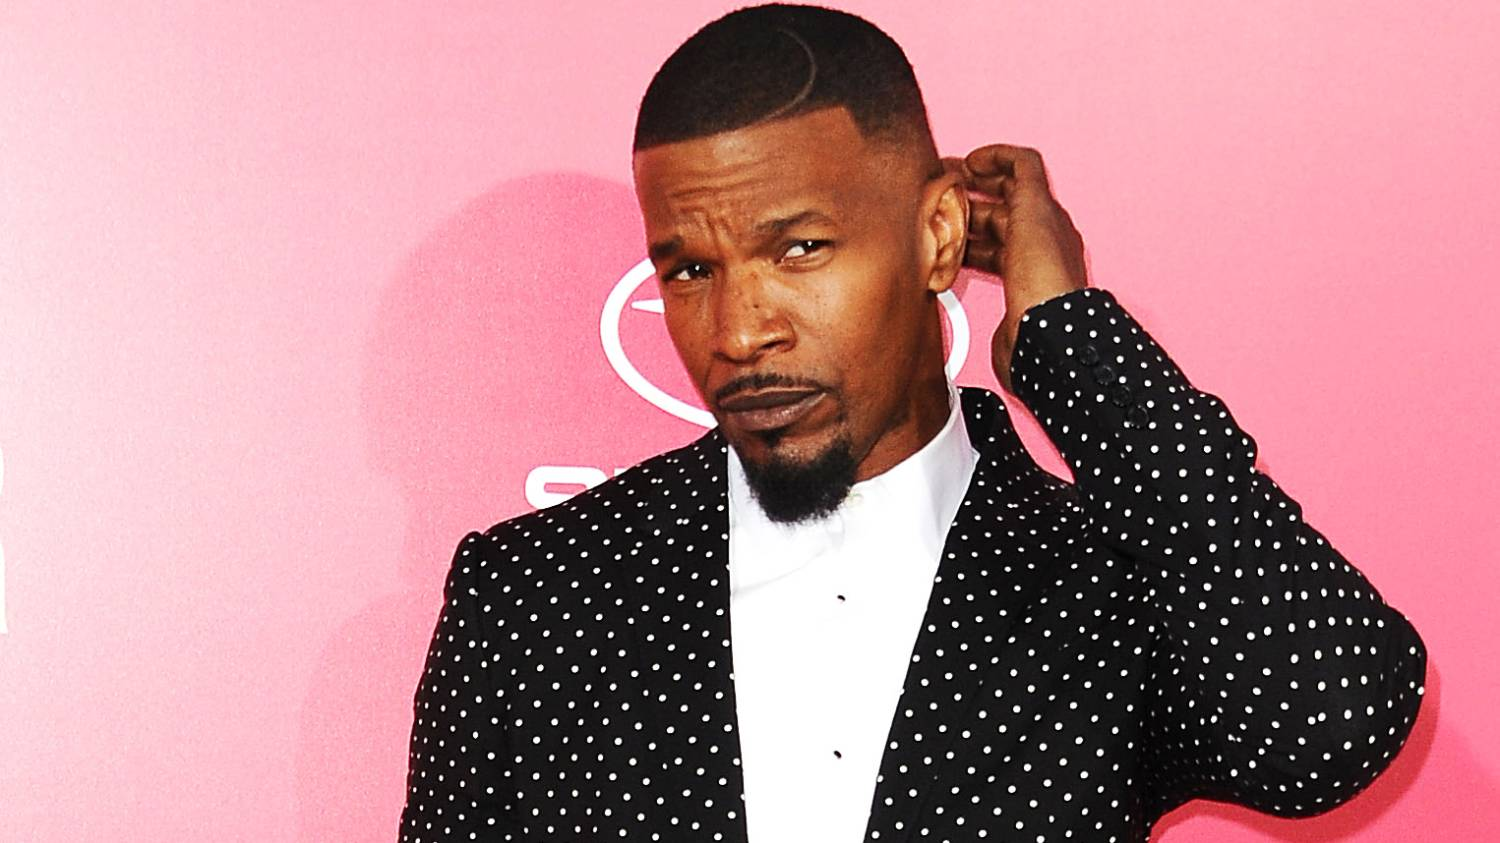 Jamie Foxx is the supreme entertainer of our era, and it's ...